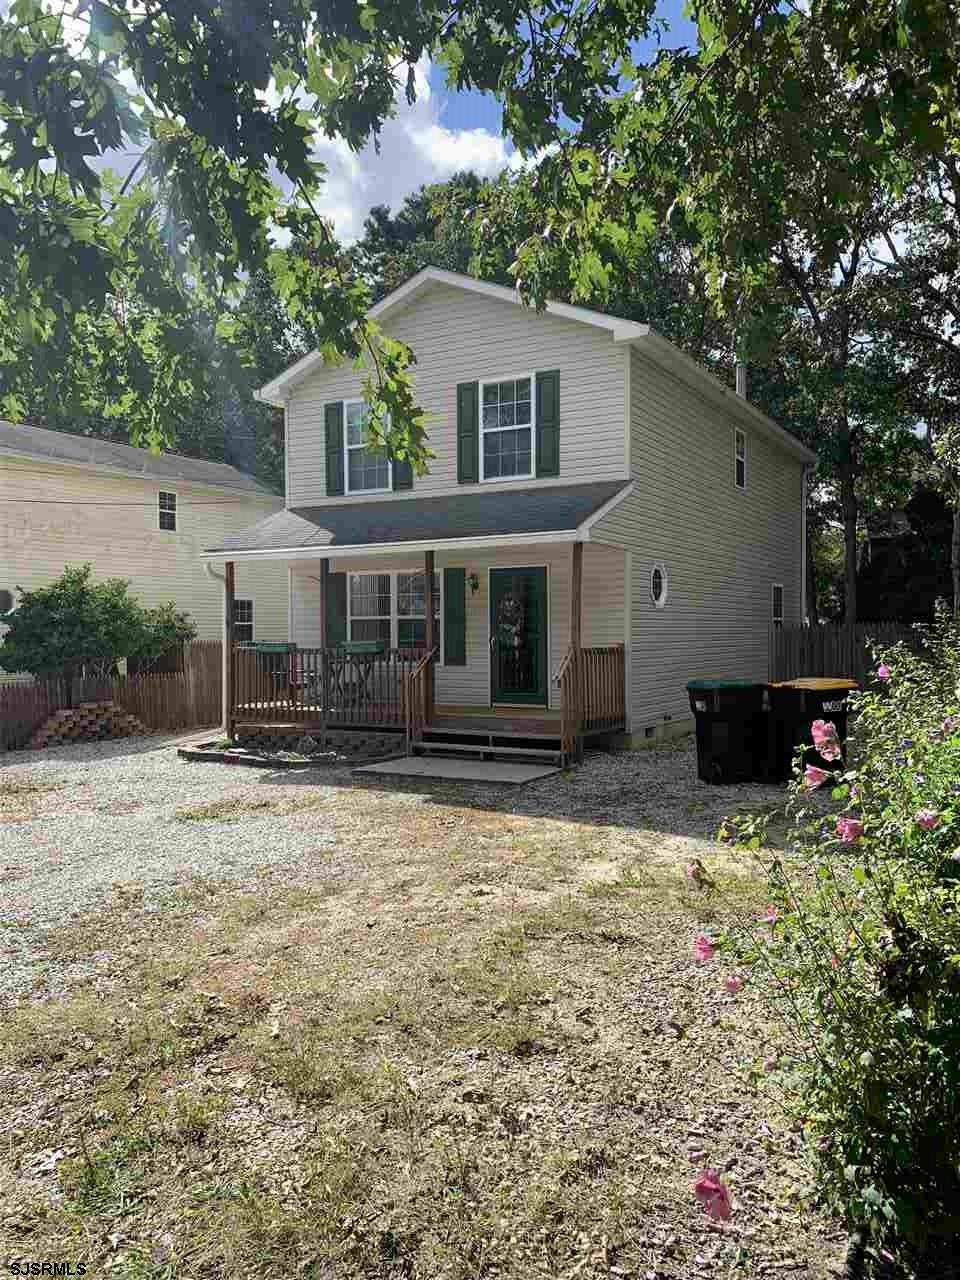 BEAUTIFUL HOME IN EXCELLENT CONDITIONS. HOME FEATURES 3BR 2-1/2BA, CENTRAL AIR GAS HEAT,FRONT PORCH,